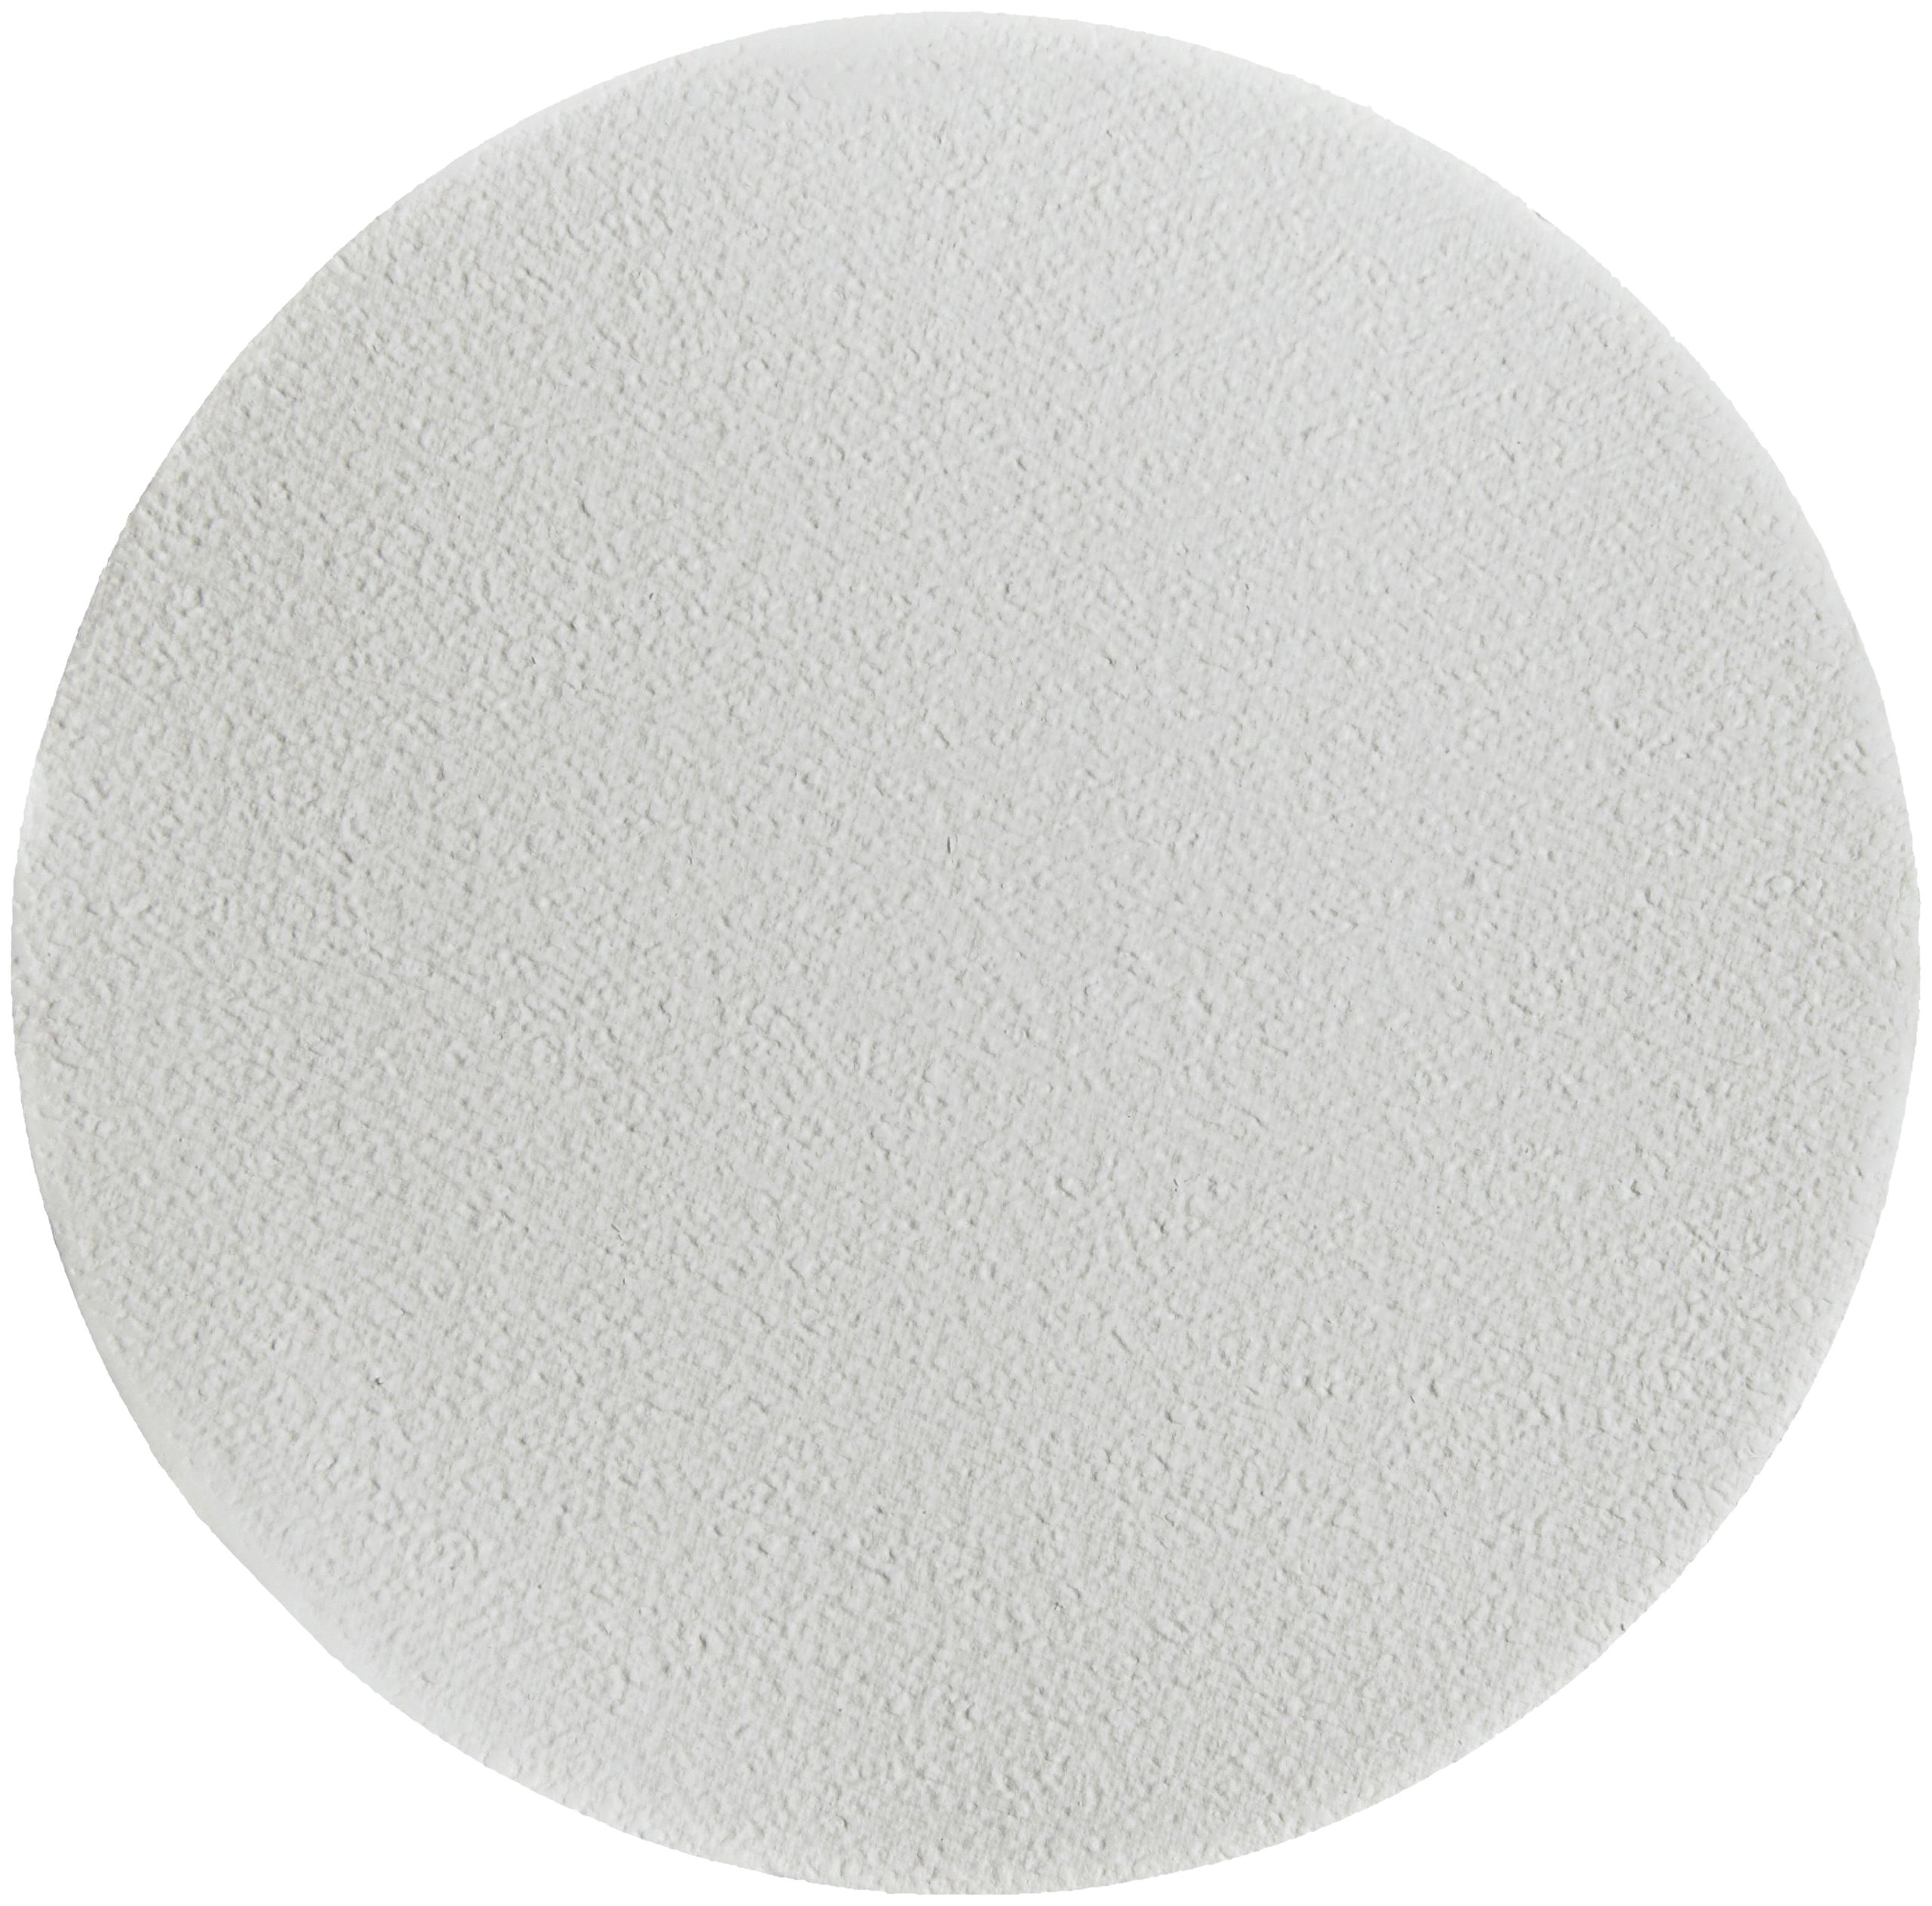 Whatman 1825-055 Glass Microfiber Binder Free Filter, 0.7 Micron, 19 s/100mL Flow Rate, Grade GF/F, 5.5cm Diameter (Pack of 100) by Whatman